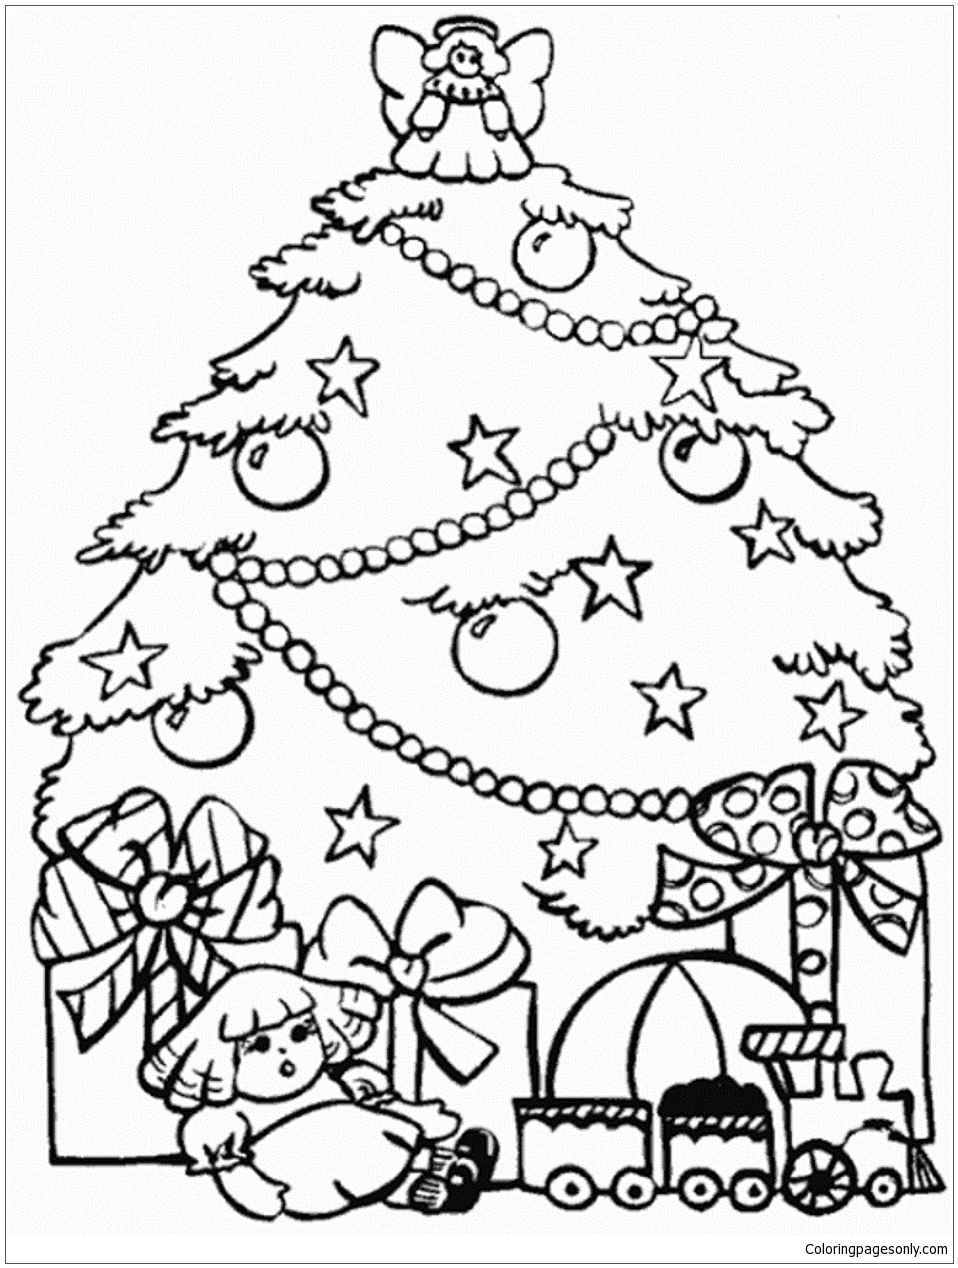 Presents And Christmas Tree Coloring Page Free Coloring Pages Online